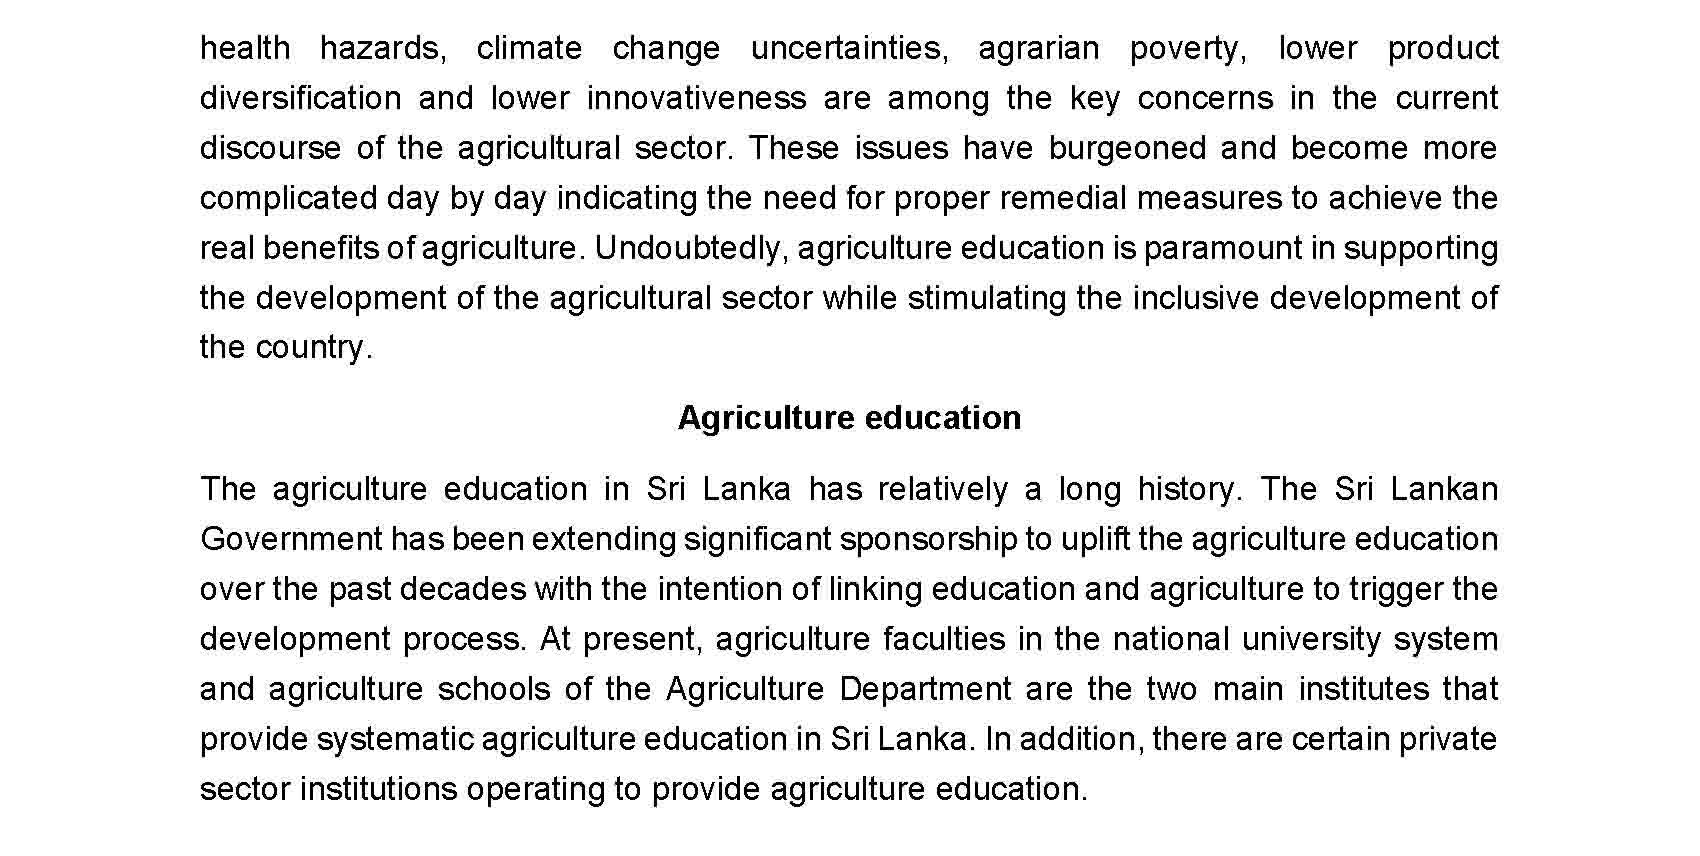 Motivating agriculture graduates with entrepreneurship opportunities Page 2